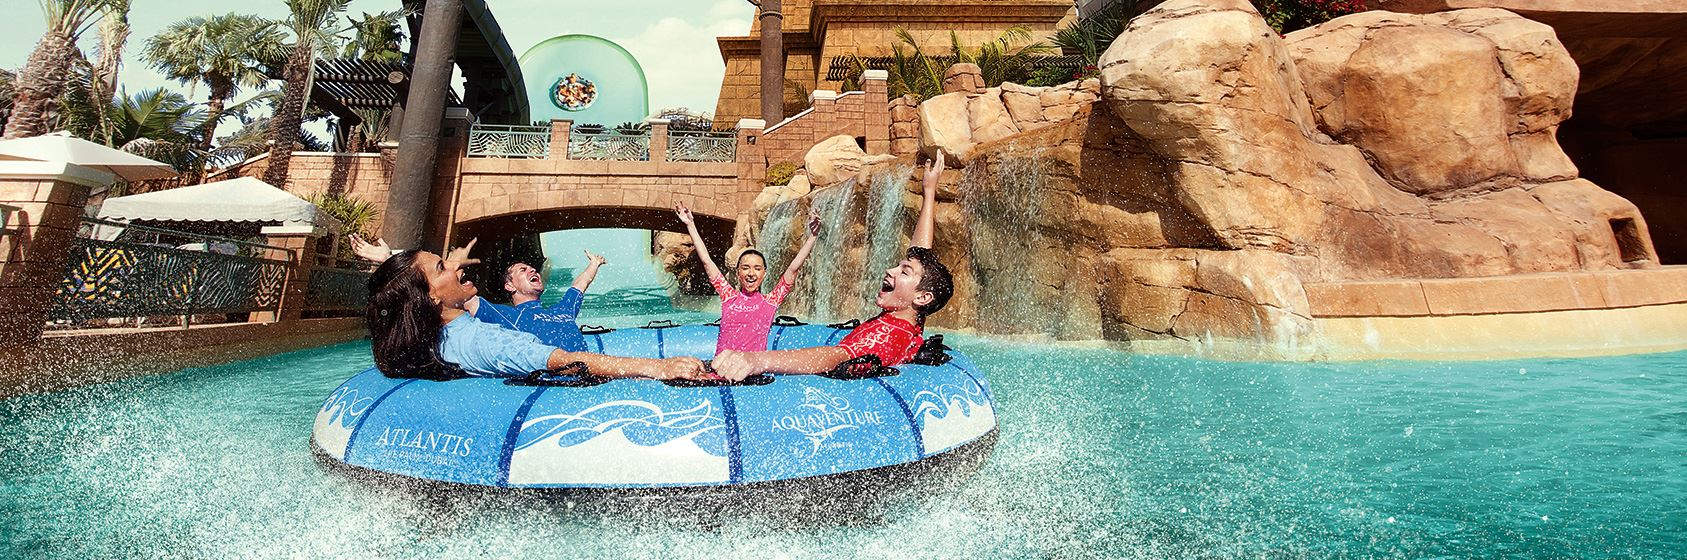 waterslides-hero-3x1.jpg